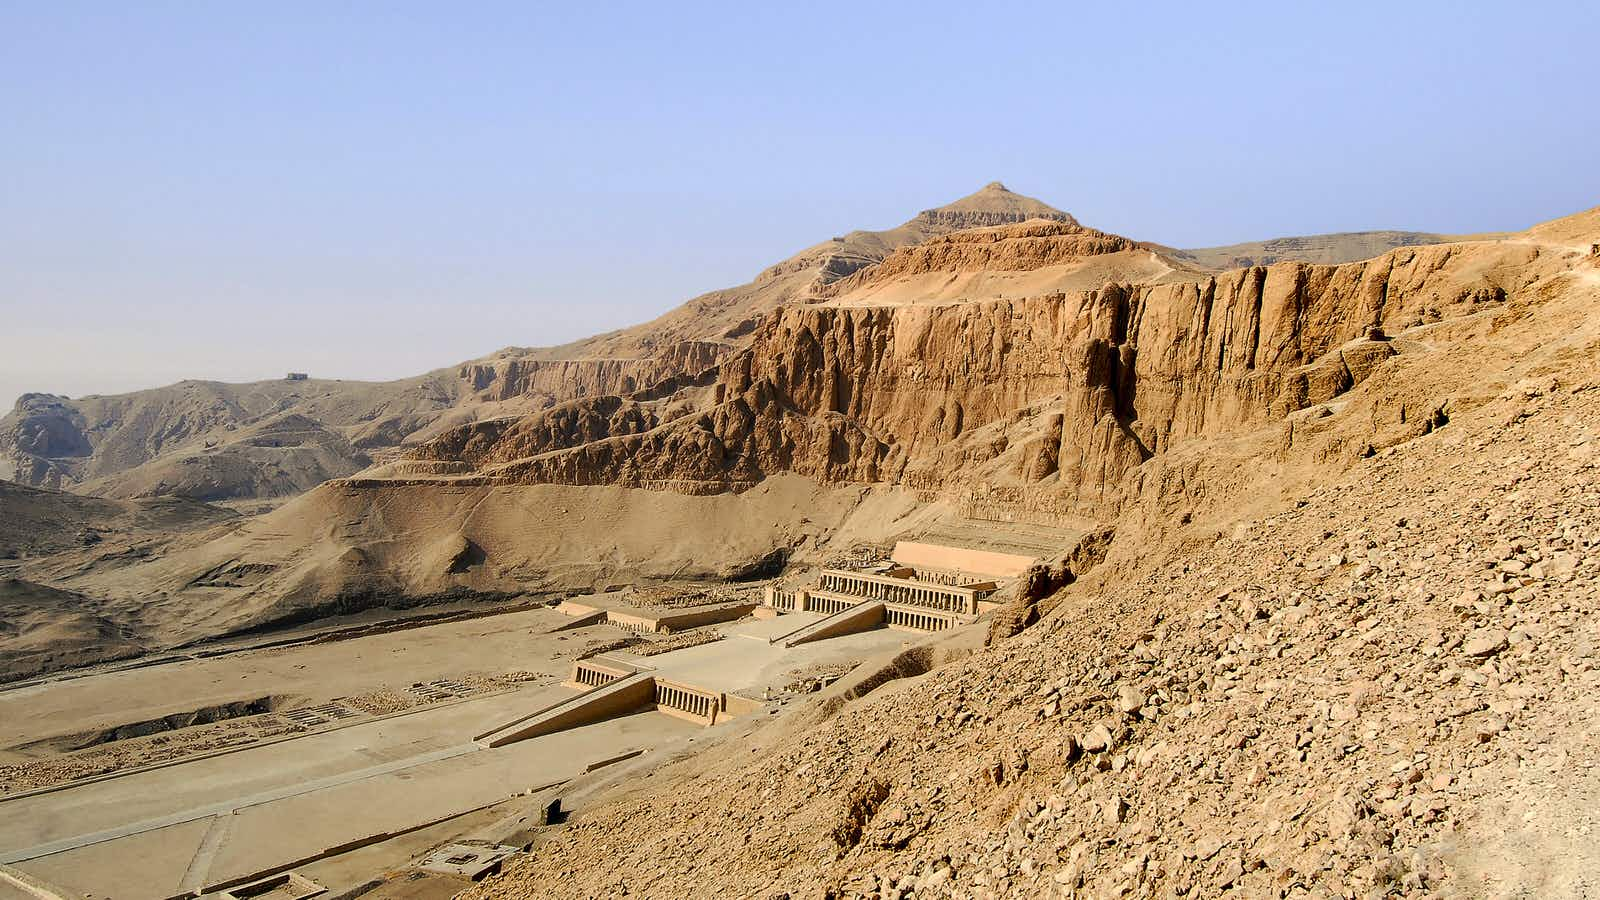 Queen Hatchepsut's temple, Luxor, Egypt  viewed from the Theban path.